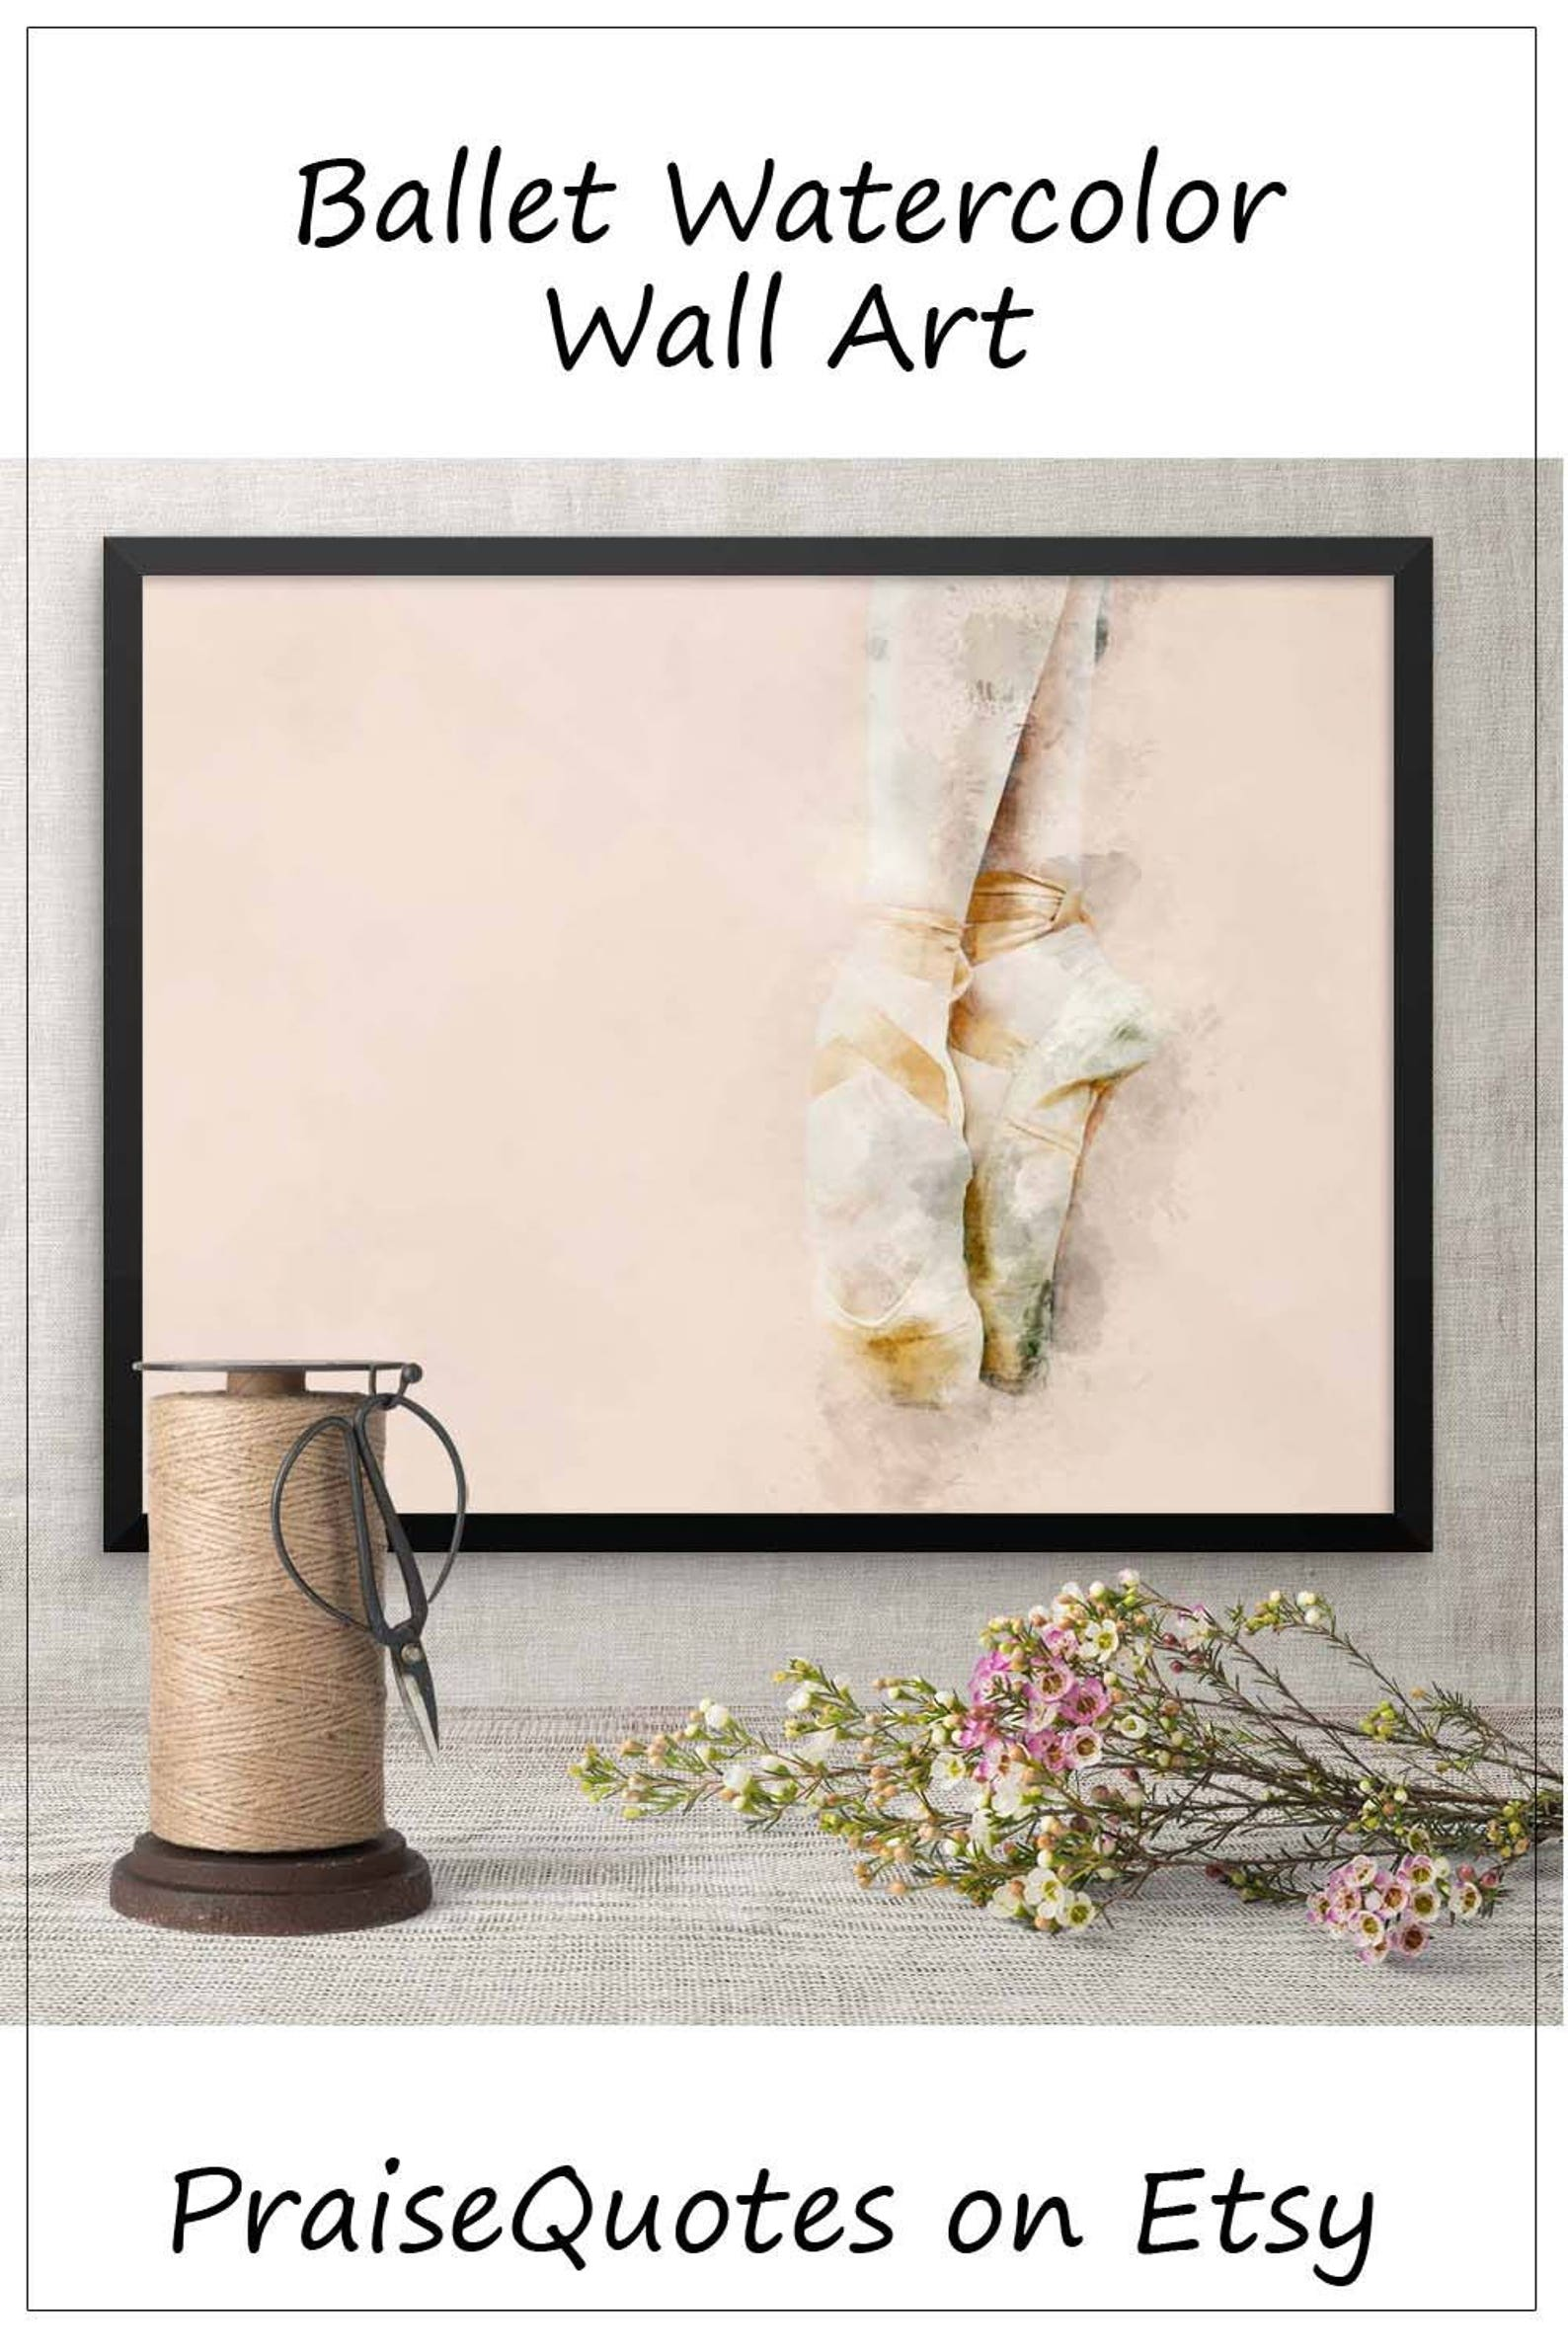 framed art, pink ballet shoes, art for baby girl nursery, birthday gift for dancer dance coach, romantic watercolor picture